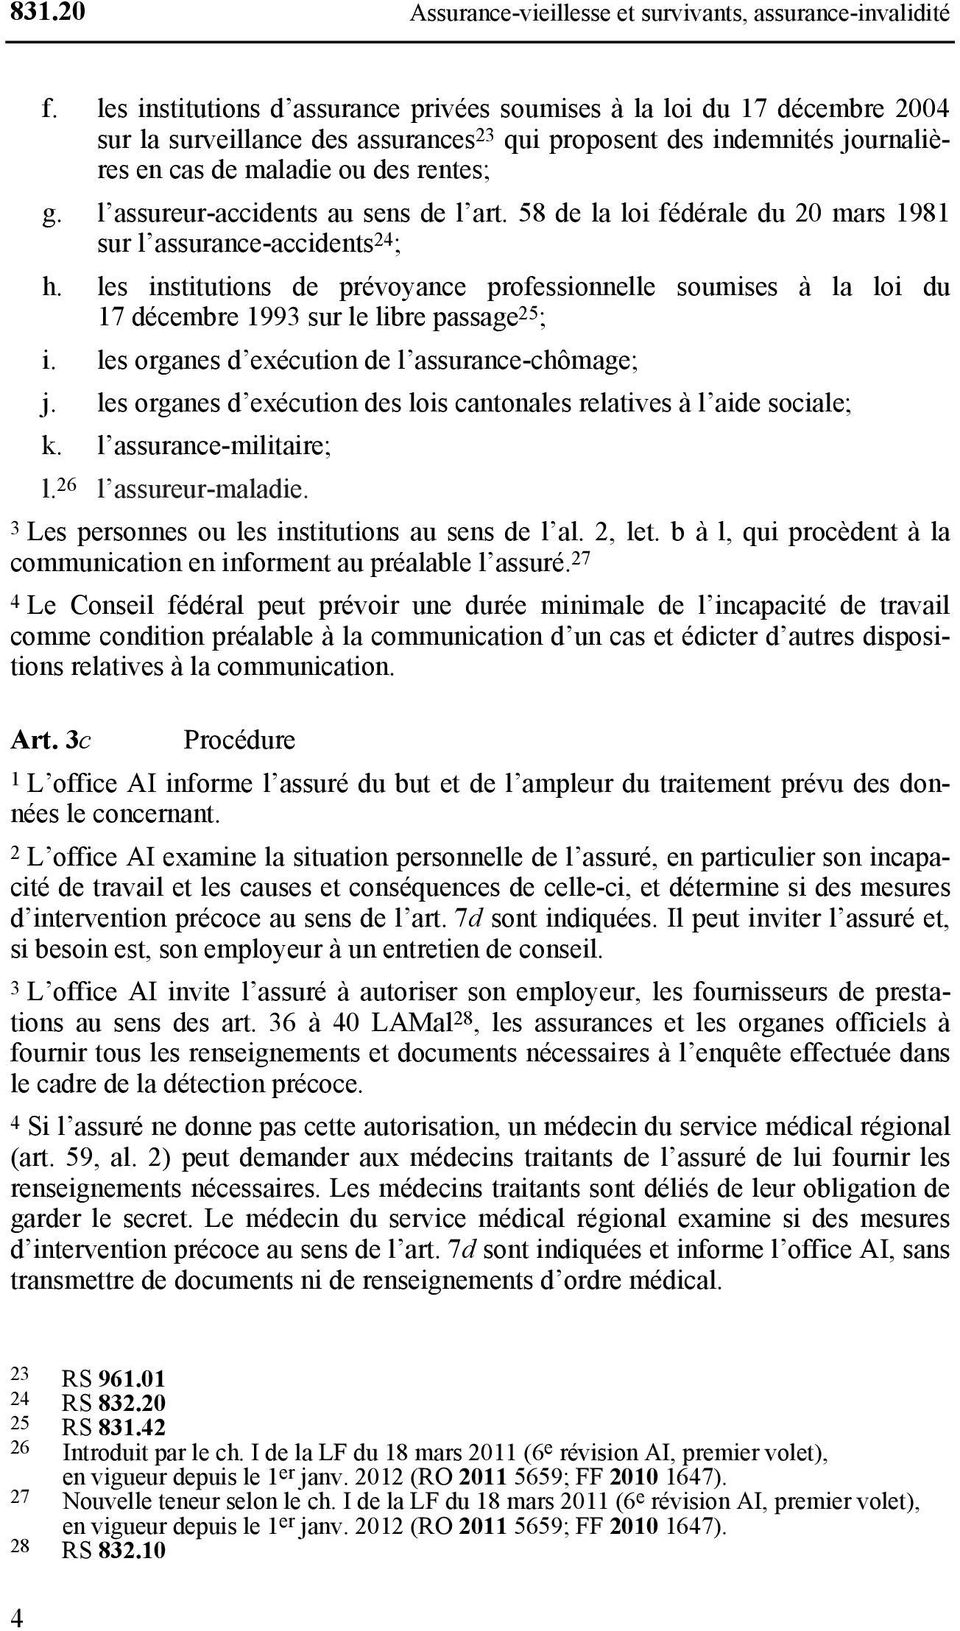 l assureur-accidents au sens de l art. 58 de la loi fédérale du 20 mars 1981 sur l assurance-accidents 24 ; h.